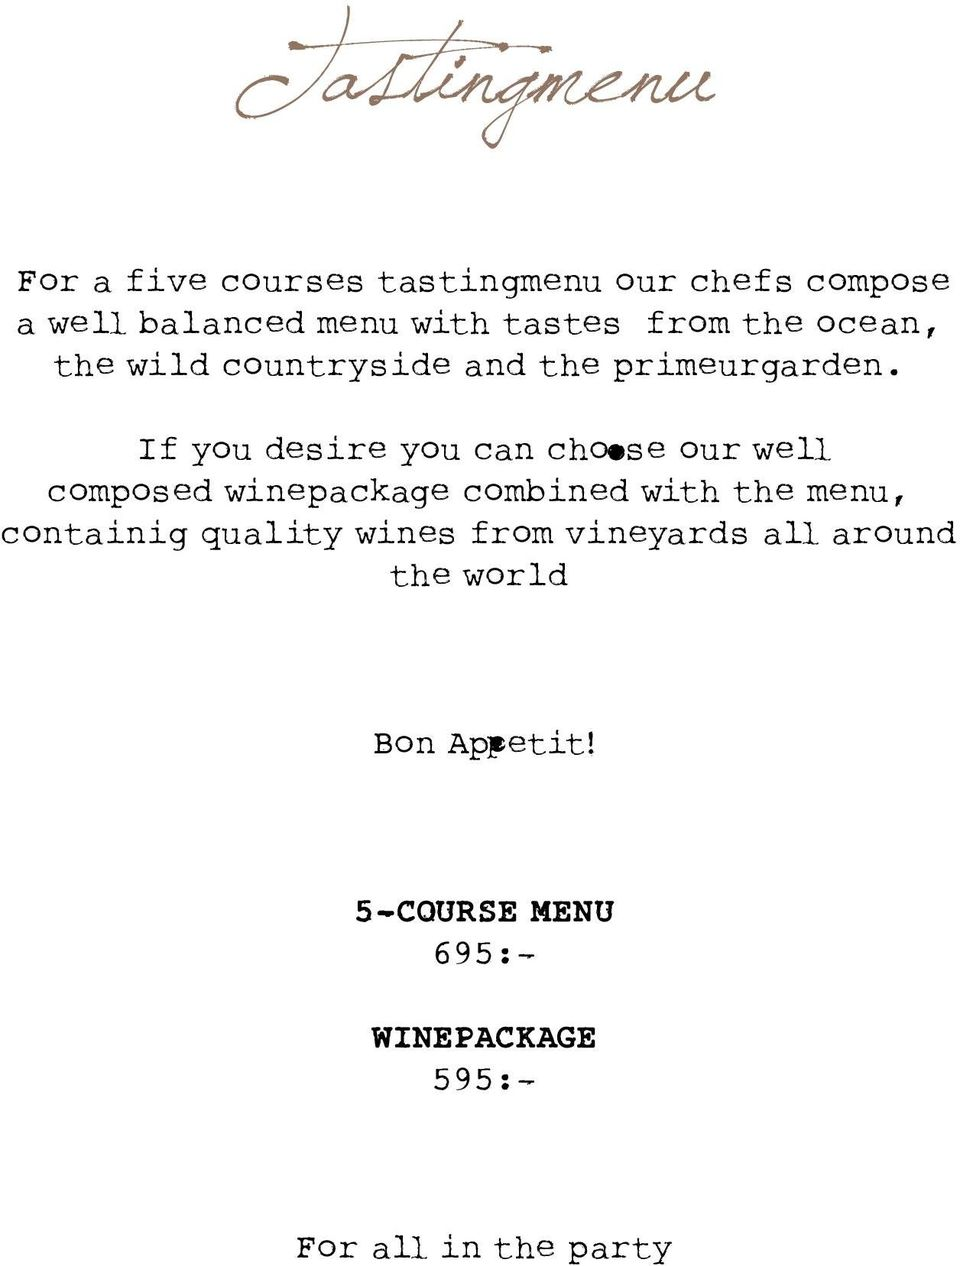 If you desire you can choose our well composed winepackage combined with the menu,